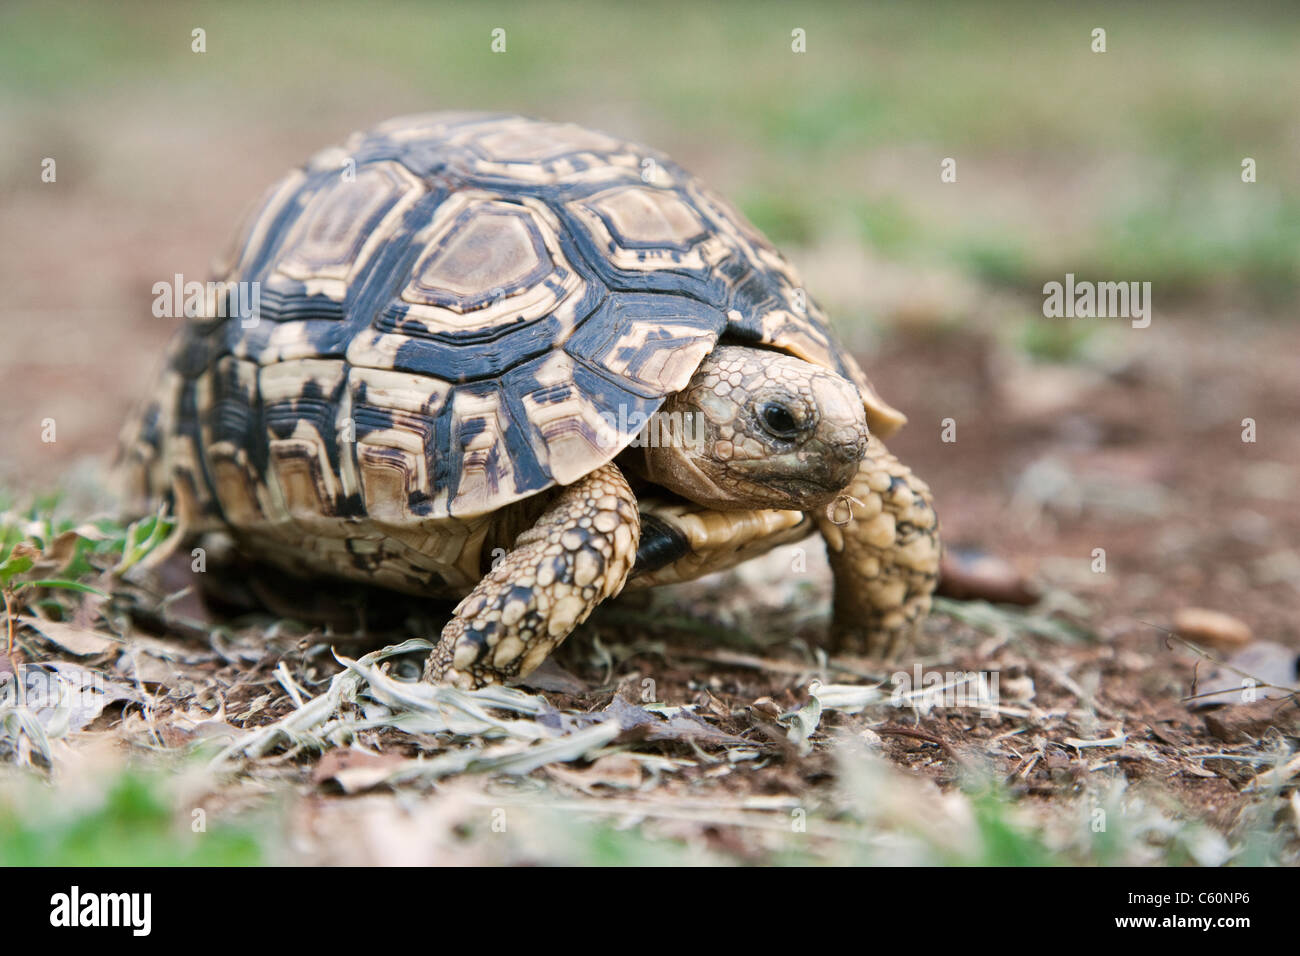 Leopard (Mountain) Tortoise, Geochelone pardalis, Kruger National Park, South Africa - Stock Image